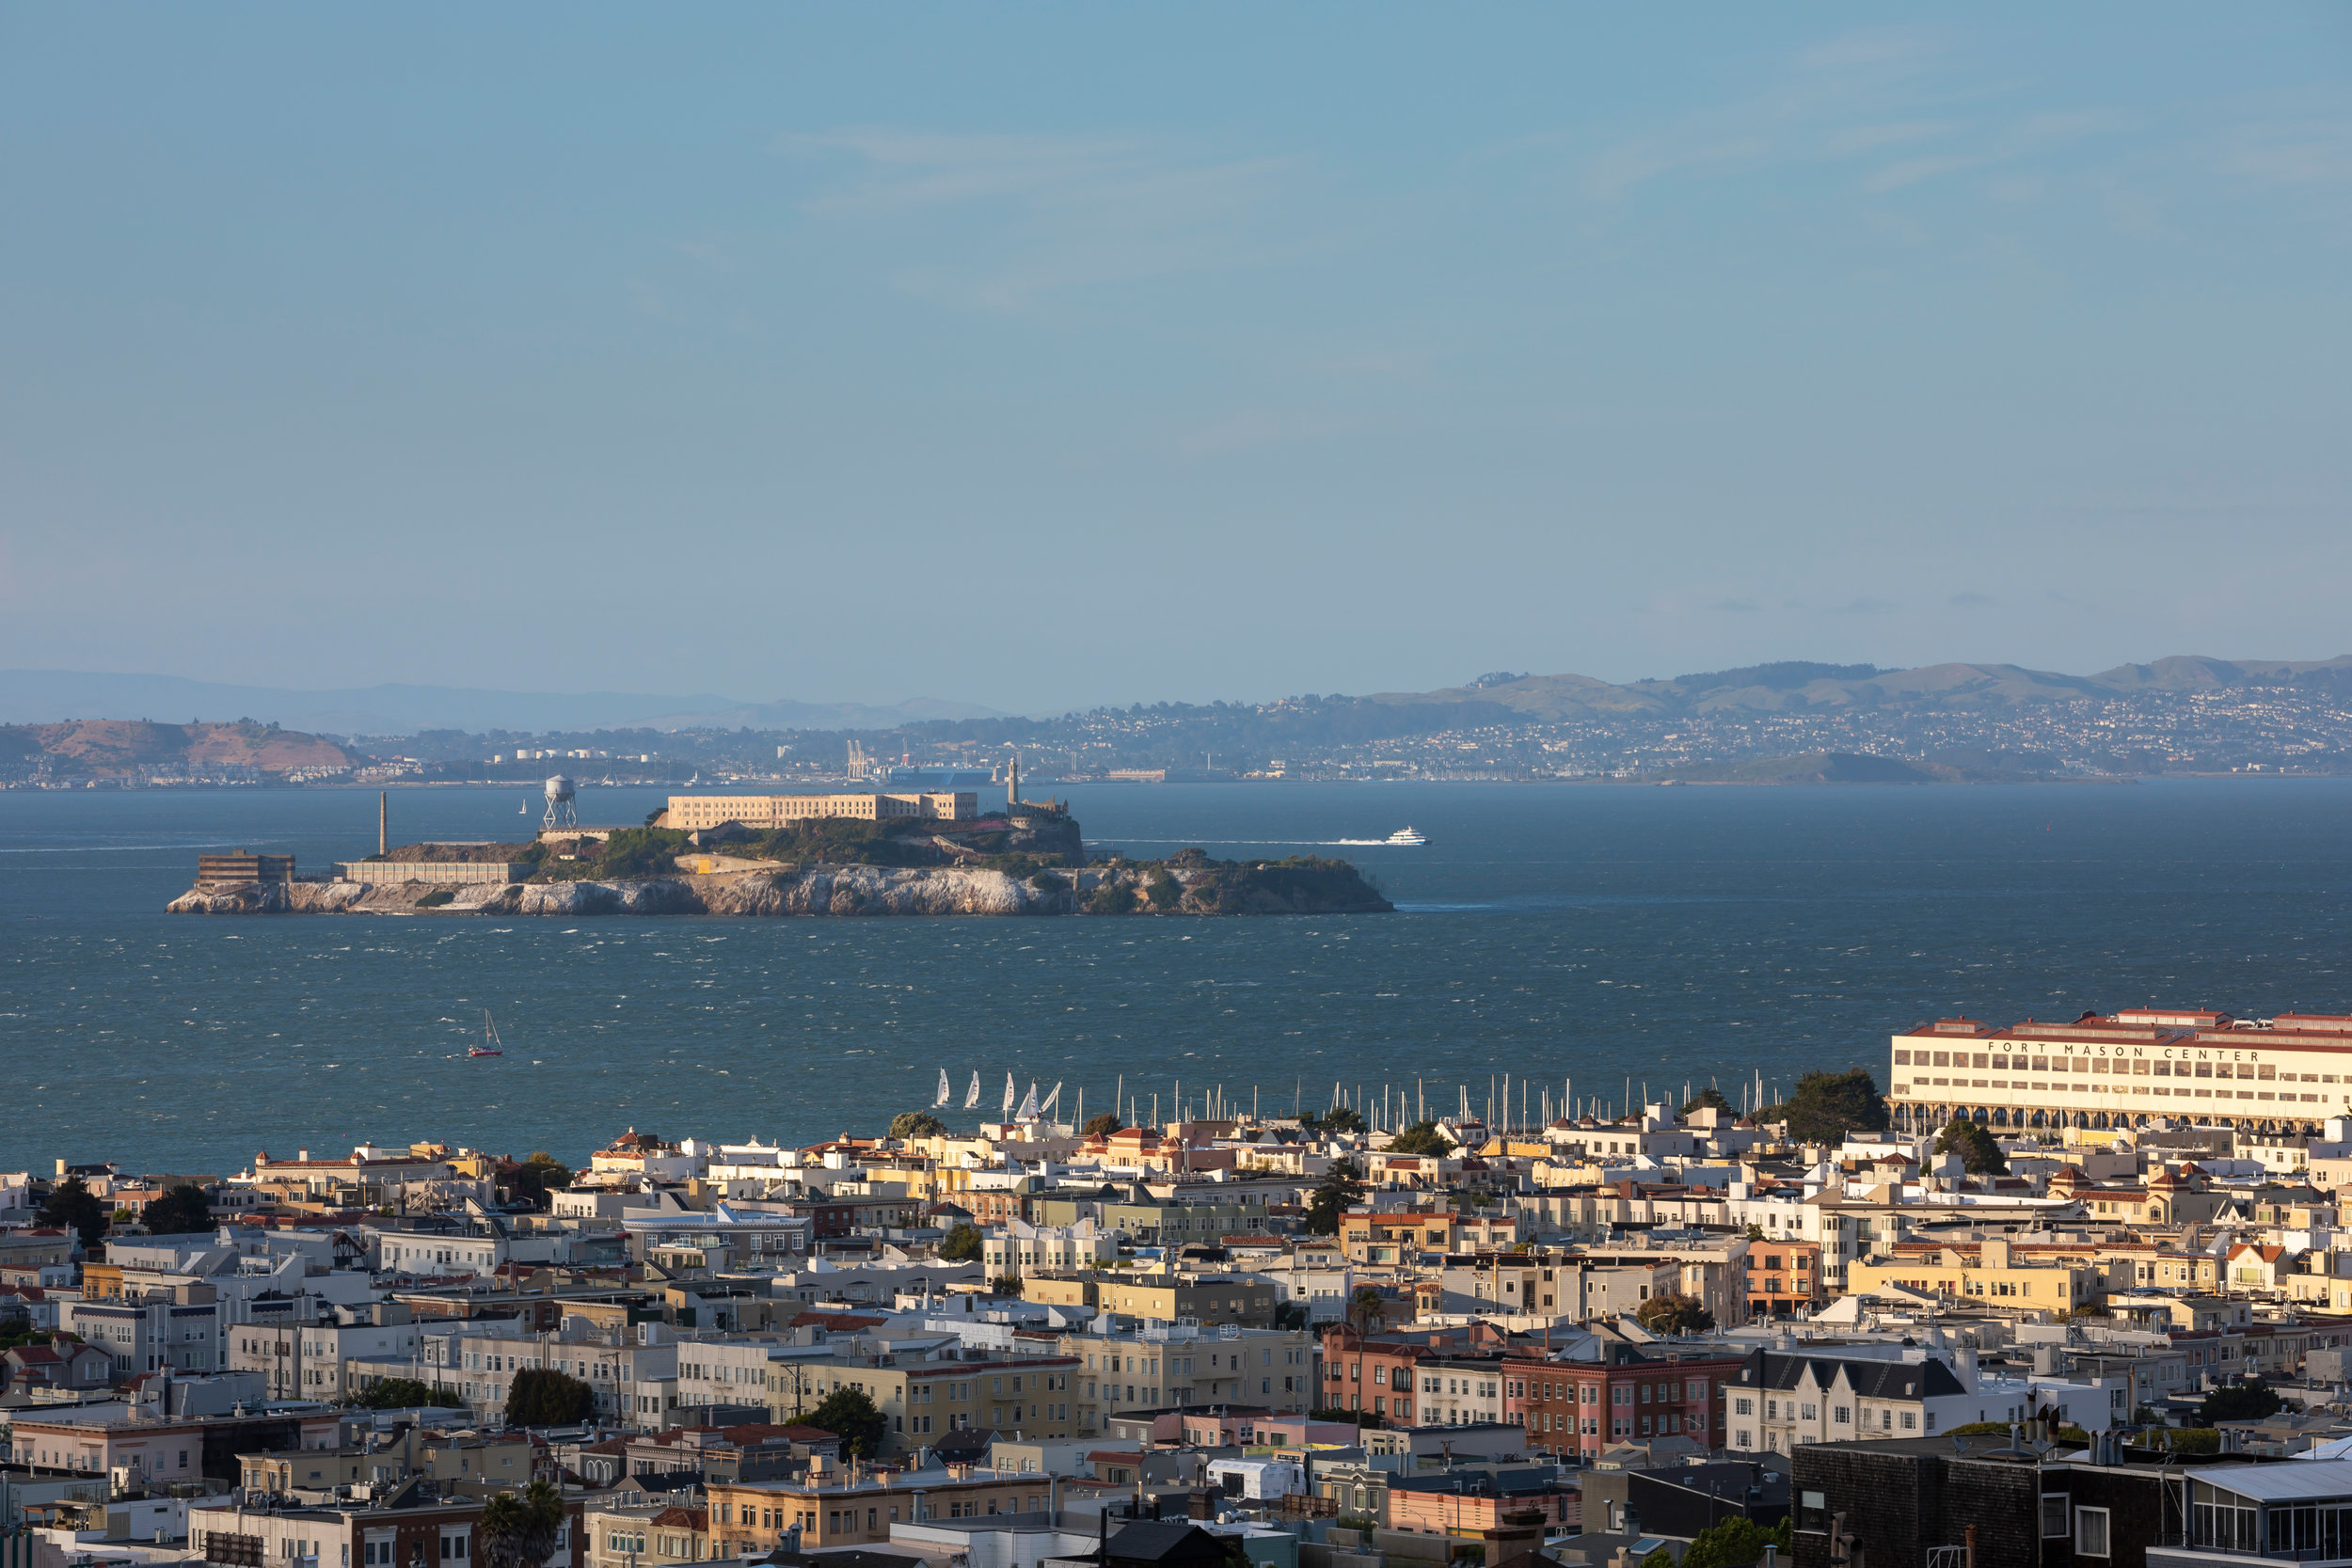 View_Day_Alcatraz_1364.jpg